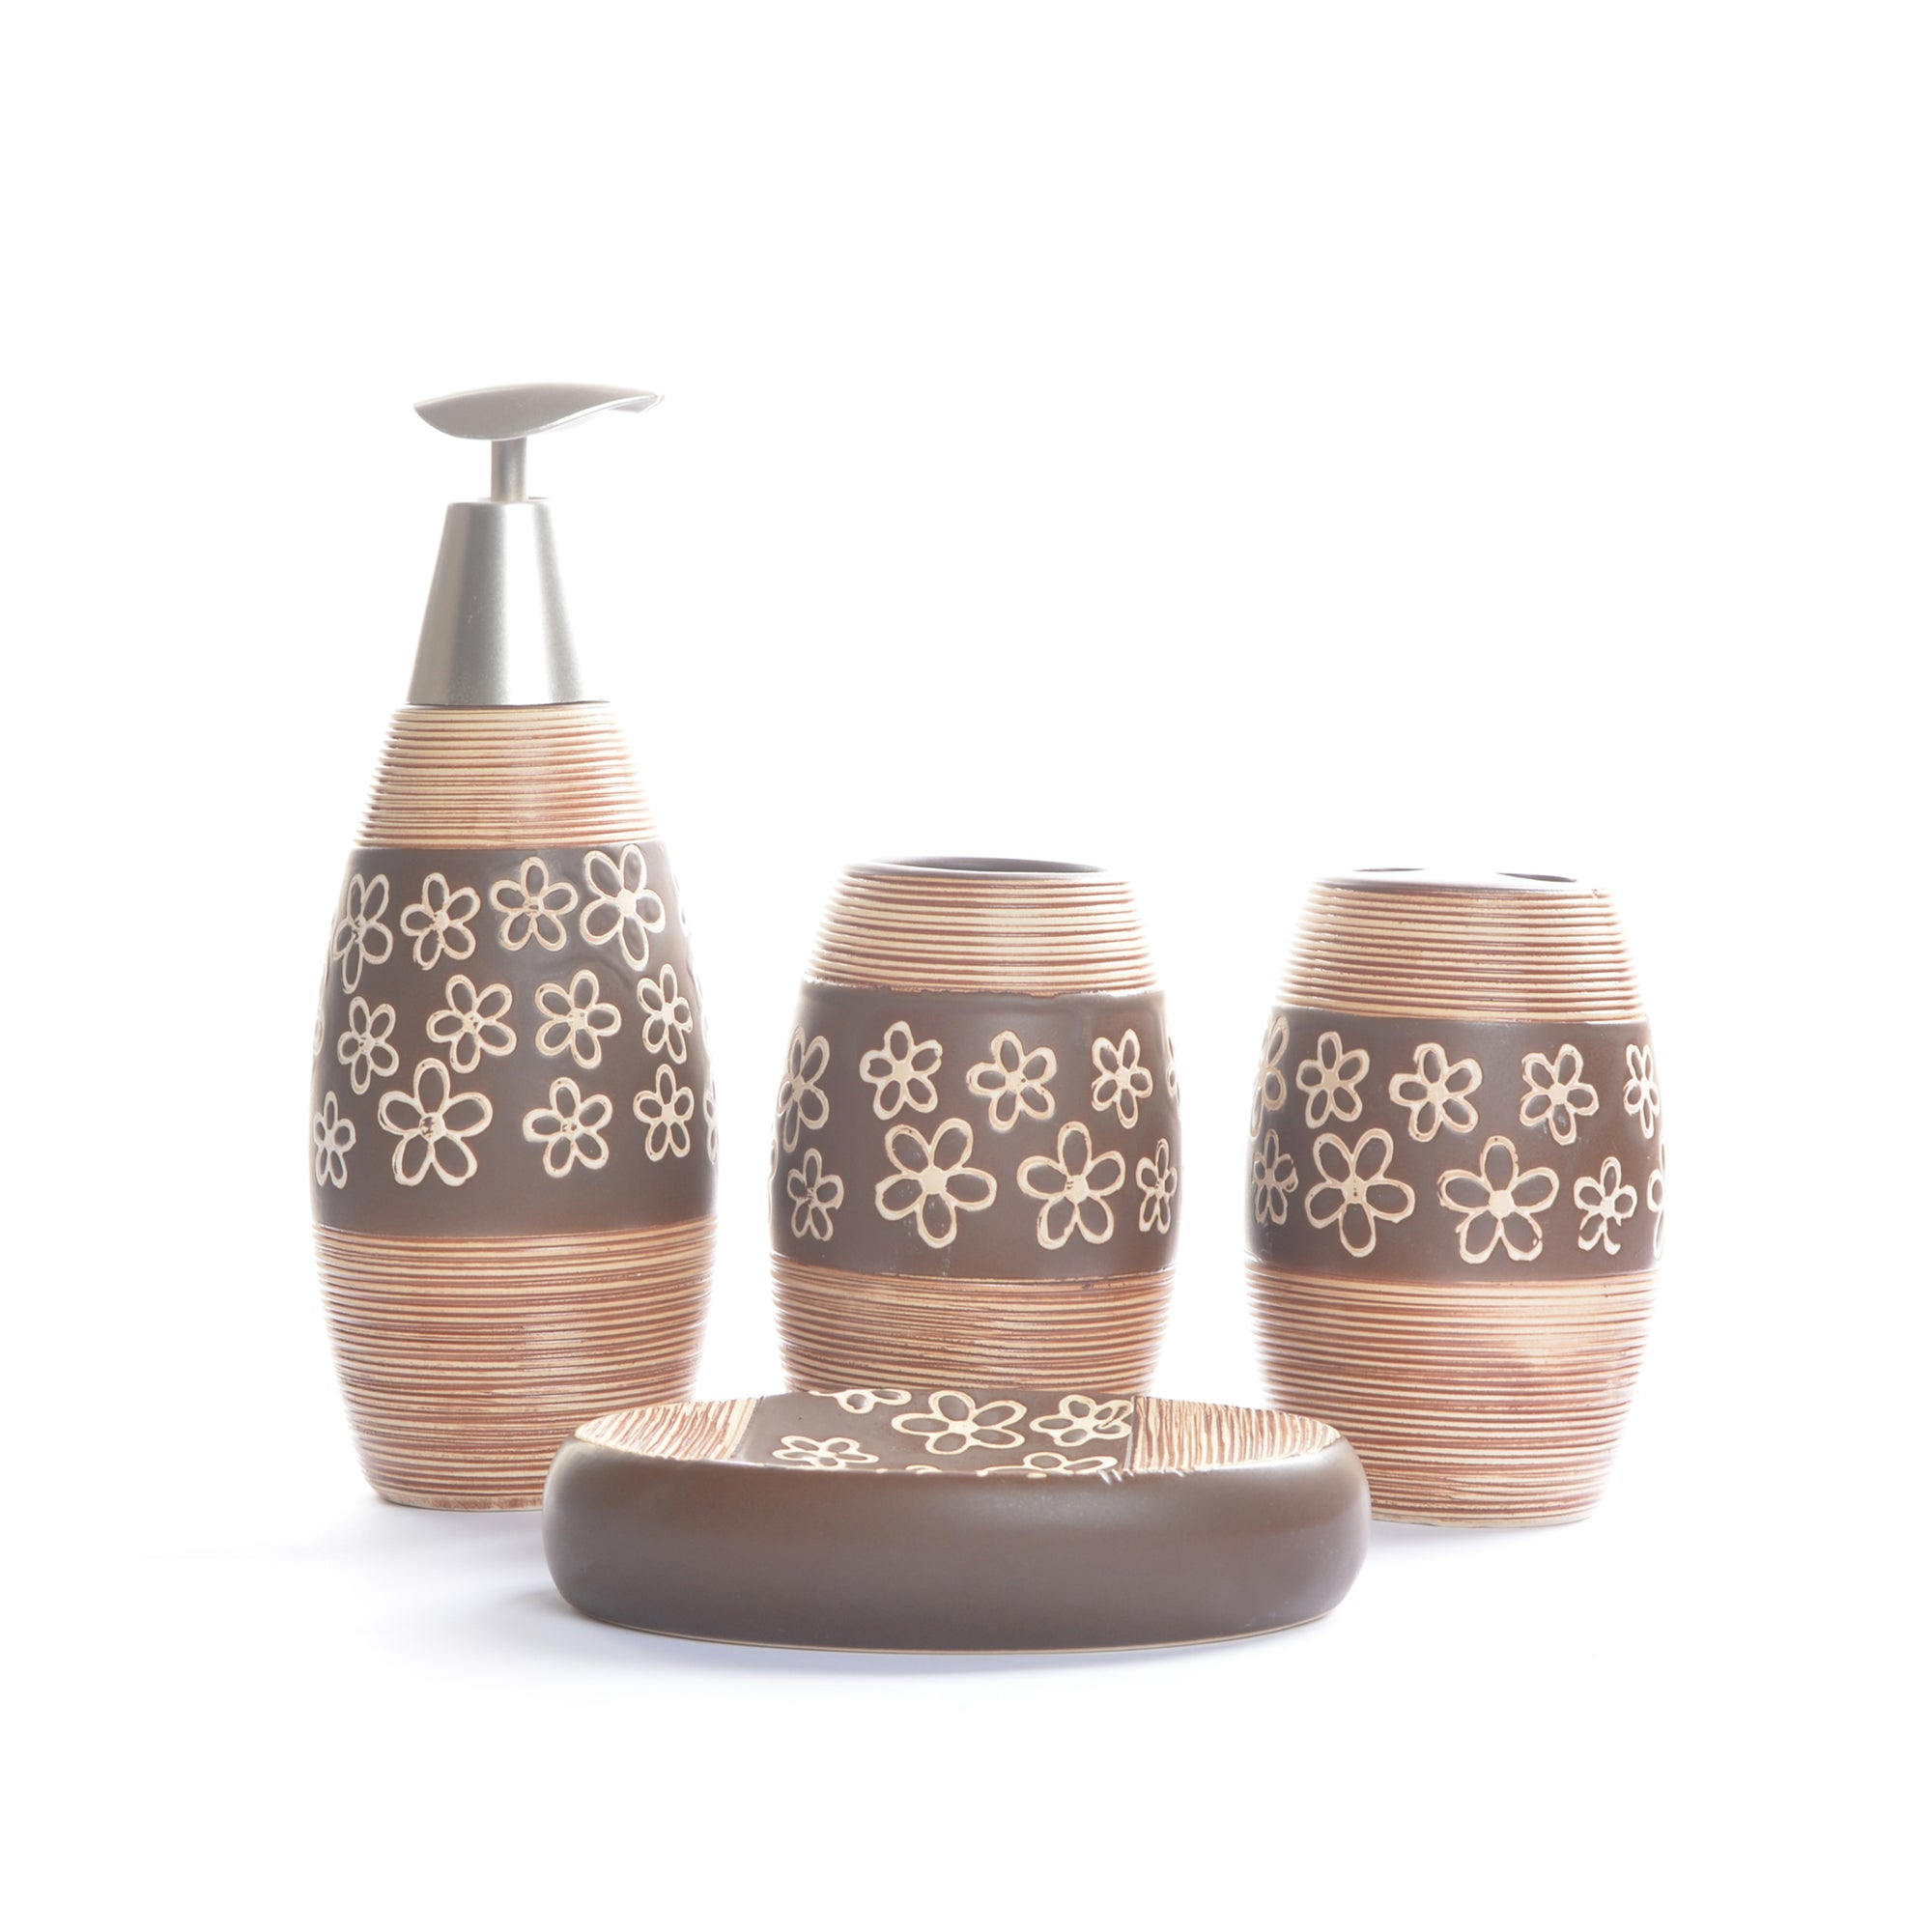 Floral Design Bathroom Set (Brown)